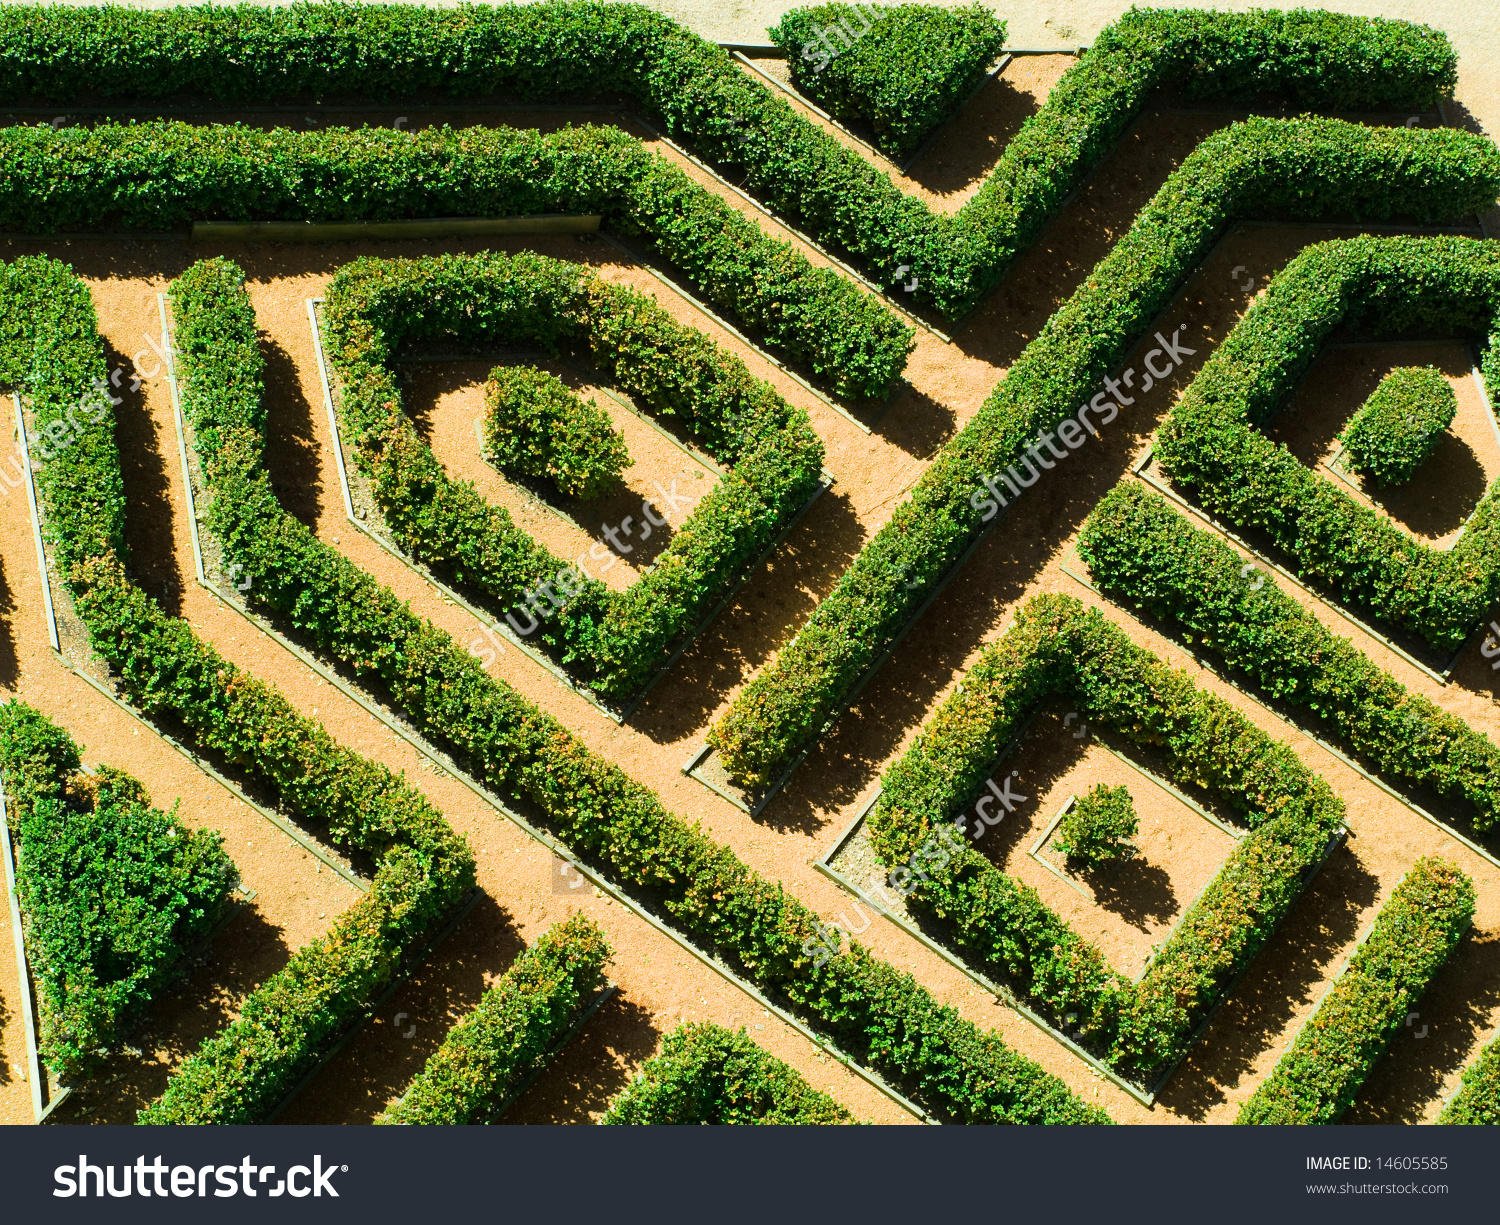 Ornamental Garden Hedges Buxus Sempervirens Labyrinth Stock Photo.